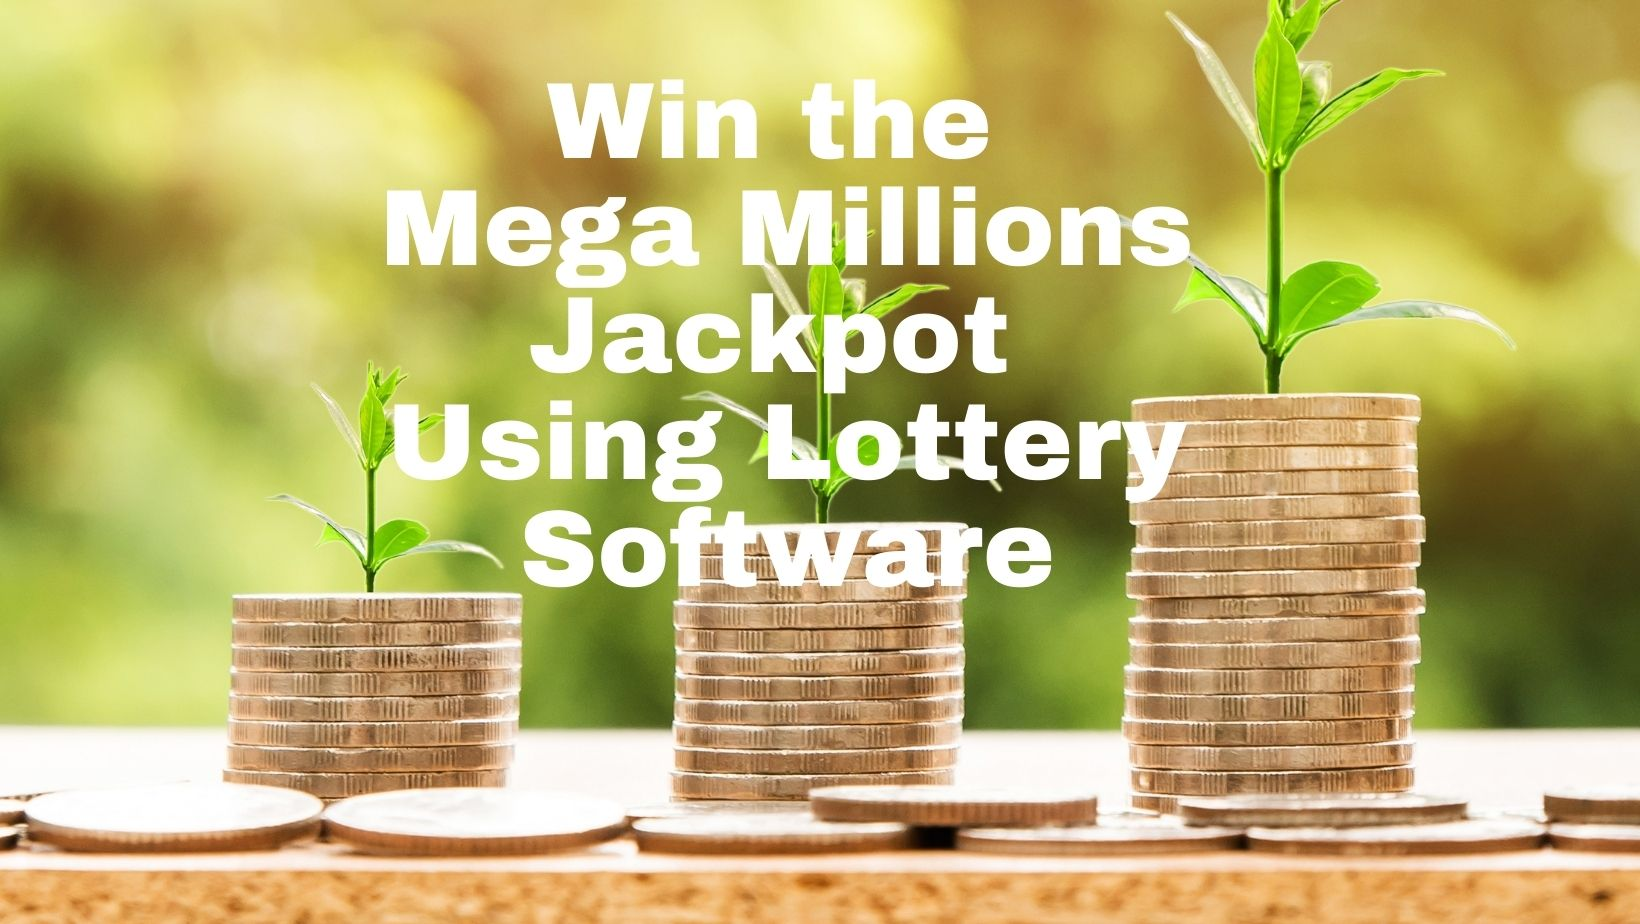 How to Win the Mega Millions Jackpot Using Lottery Software